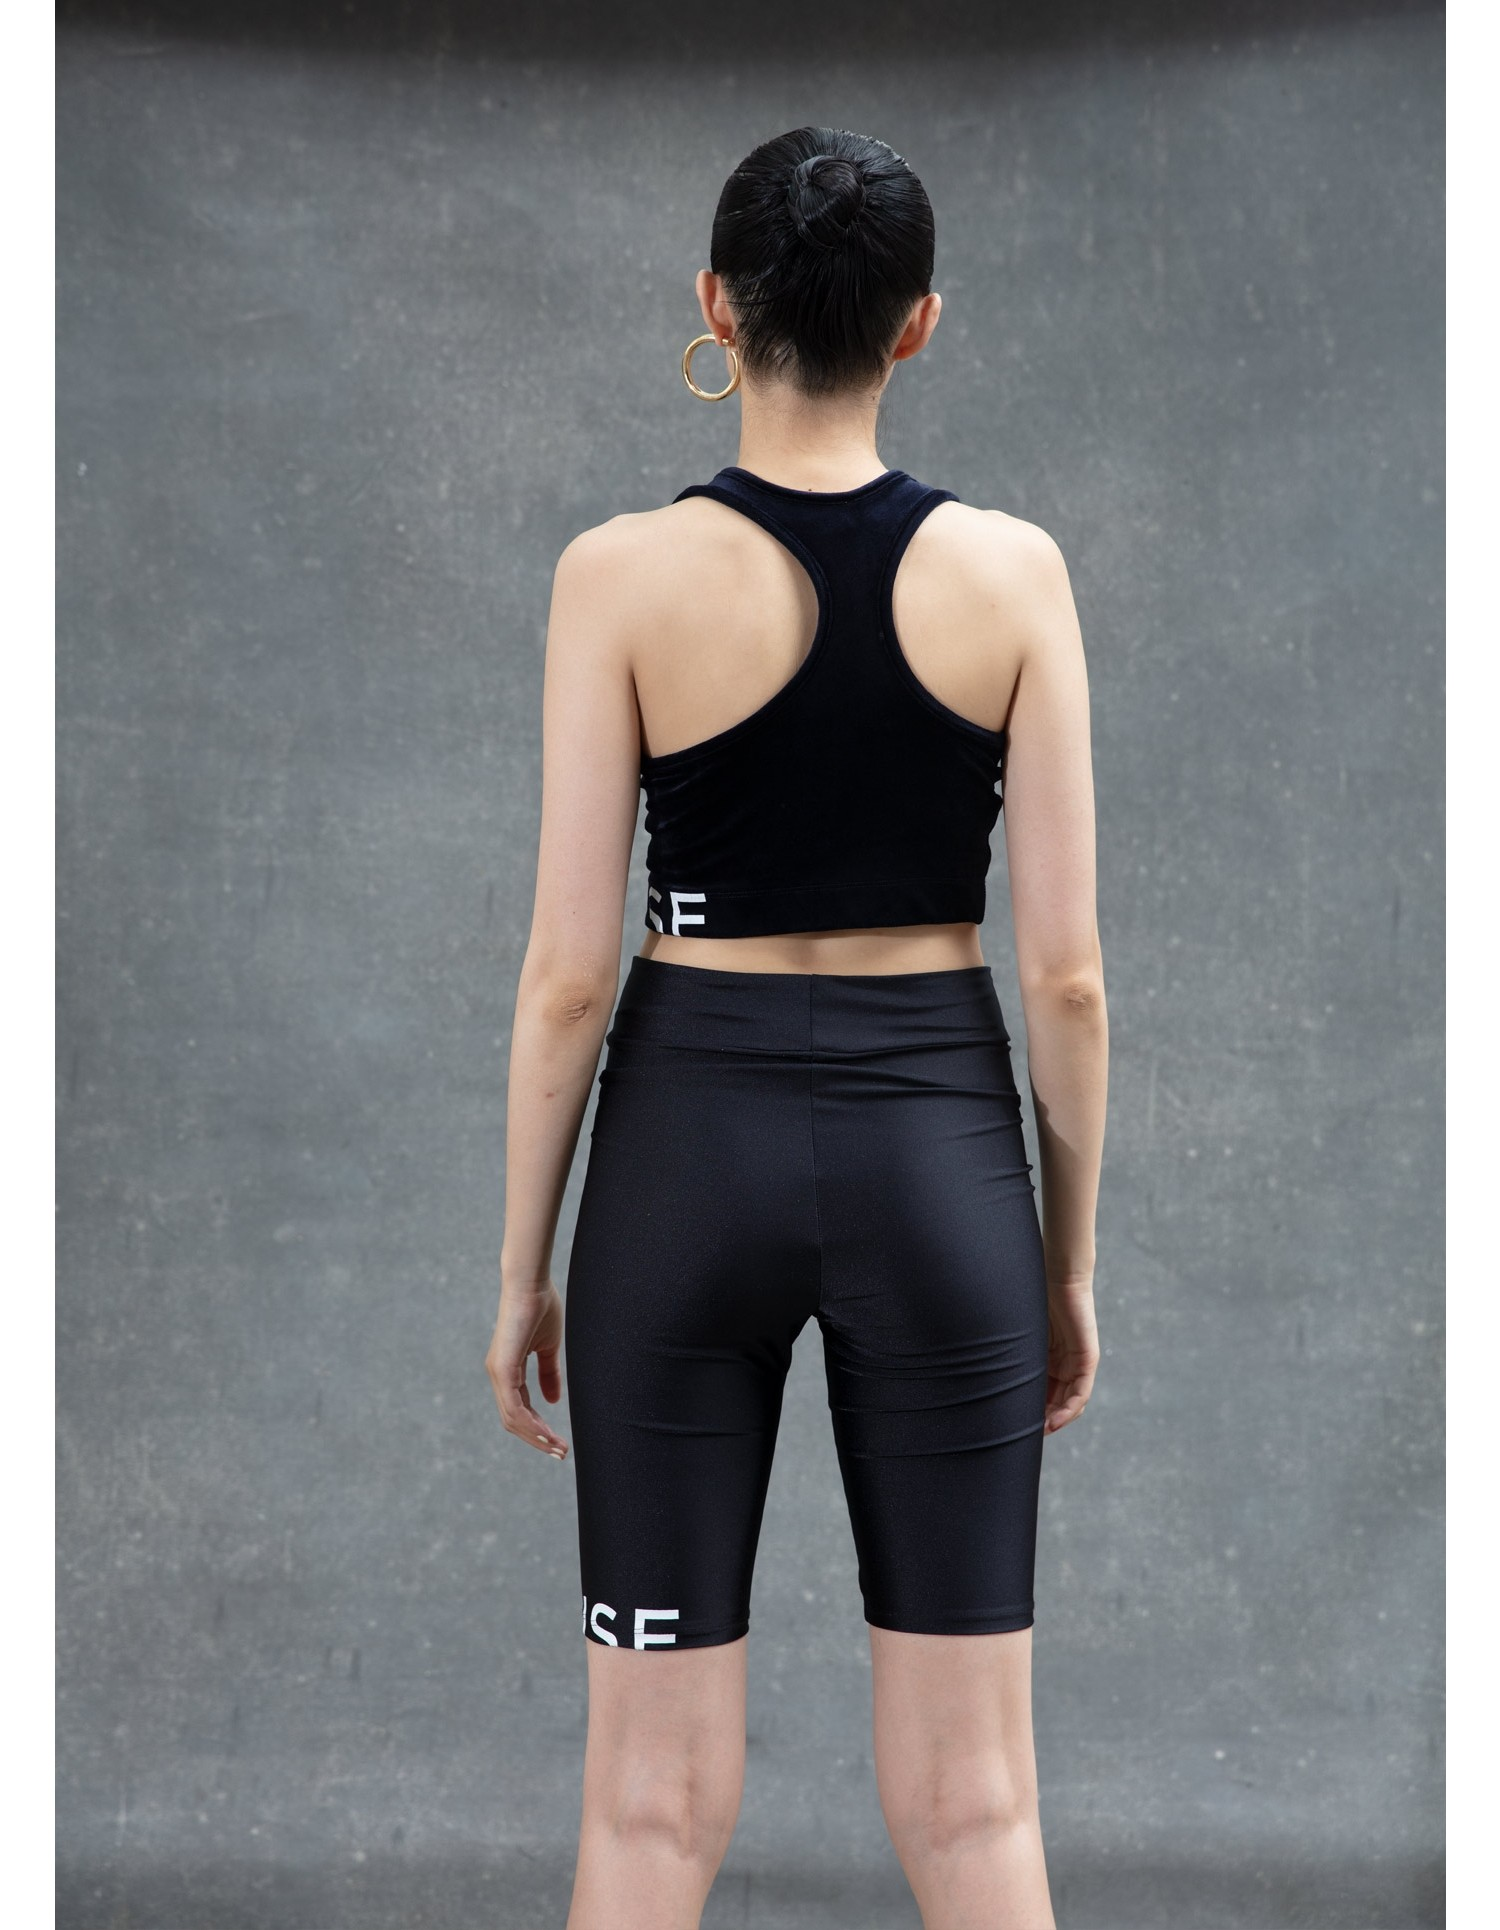 MONSE Crooked Racerback Crop Top in Midnight on Model Back View